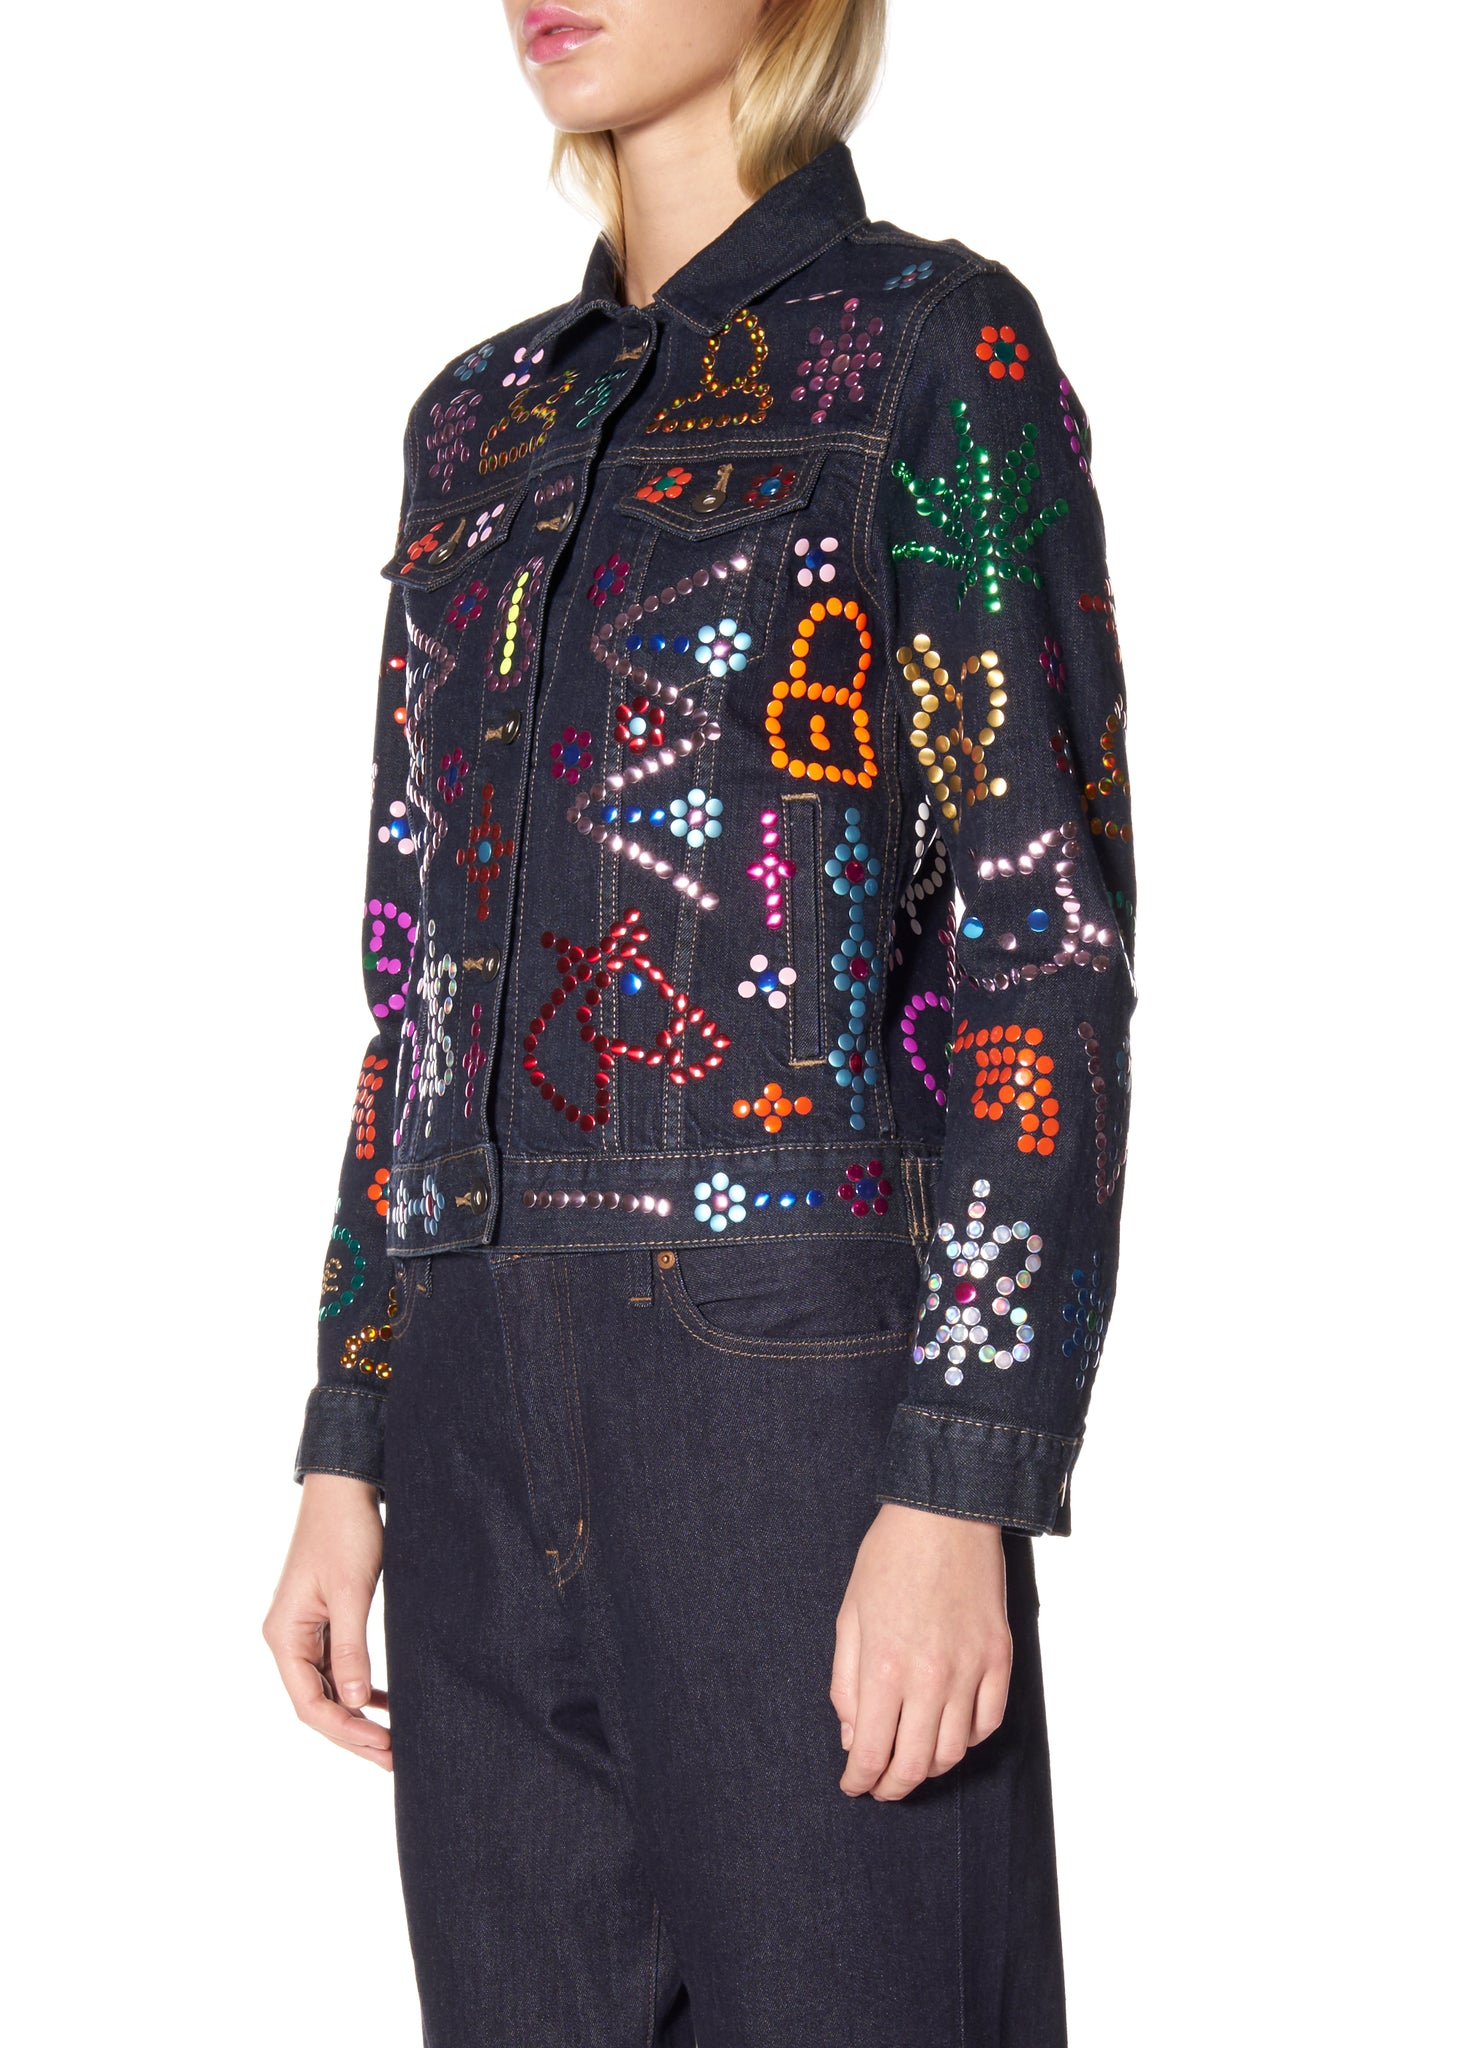 """SYMBOLS"" DENIM JACKET - Women's Jackets & Coats - Libertine"